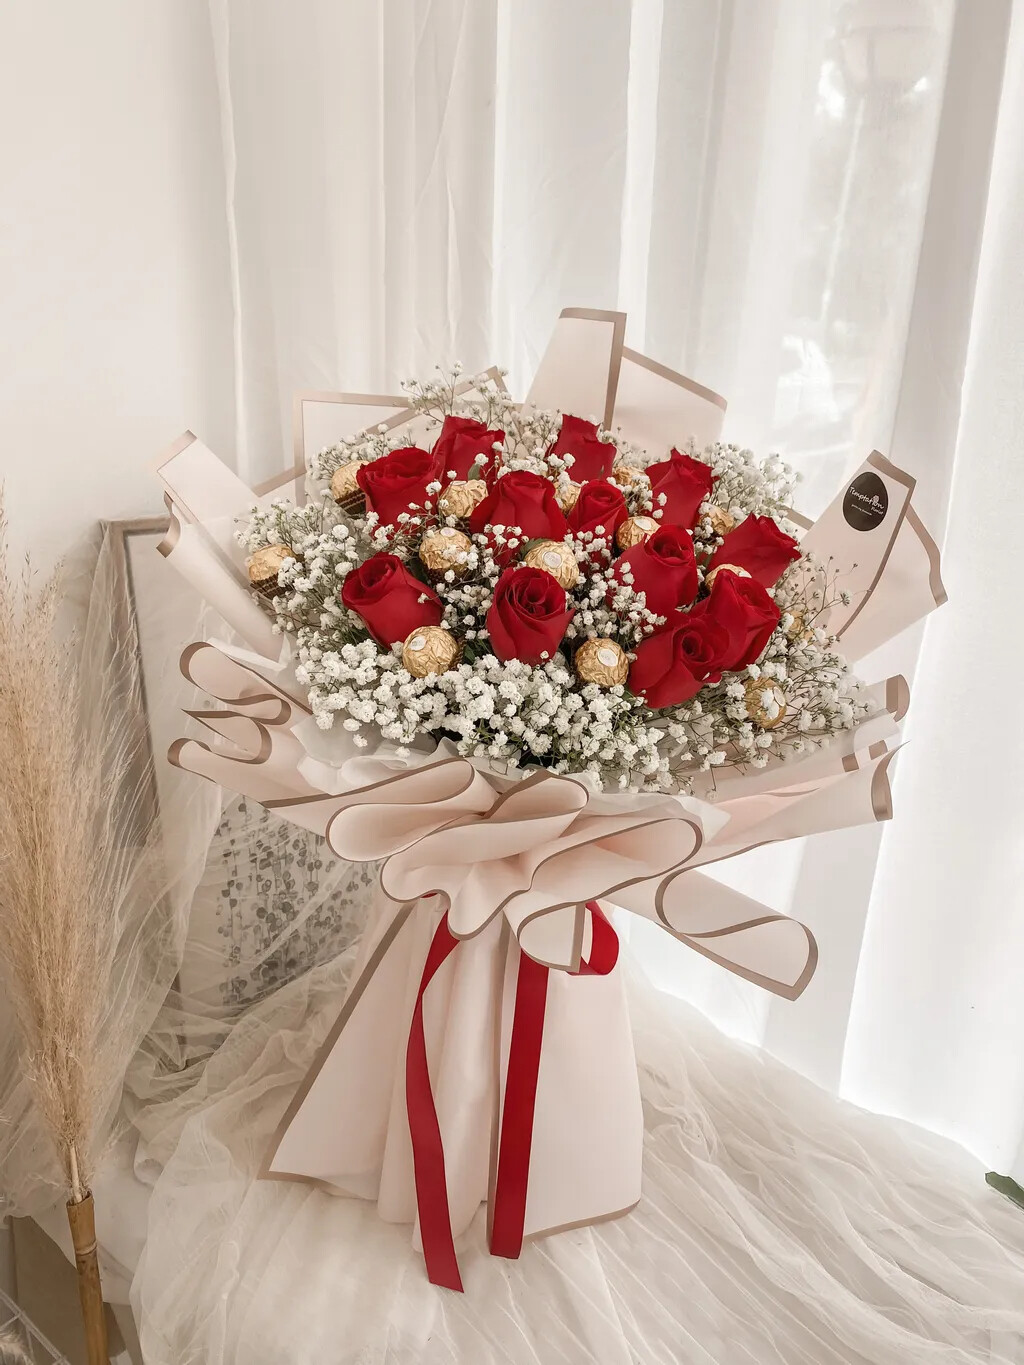 Awesomely (By:Temptation Florist from Seremban)